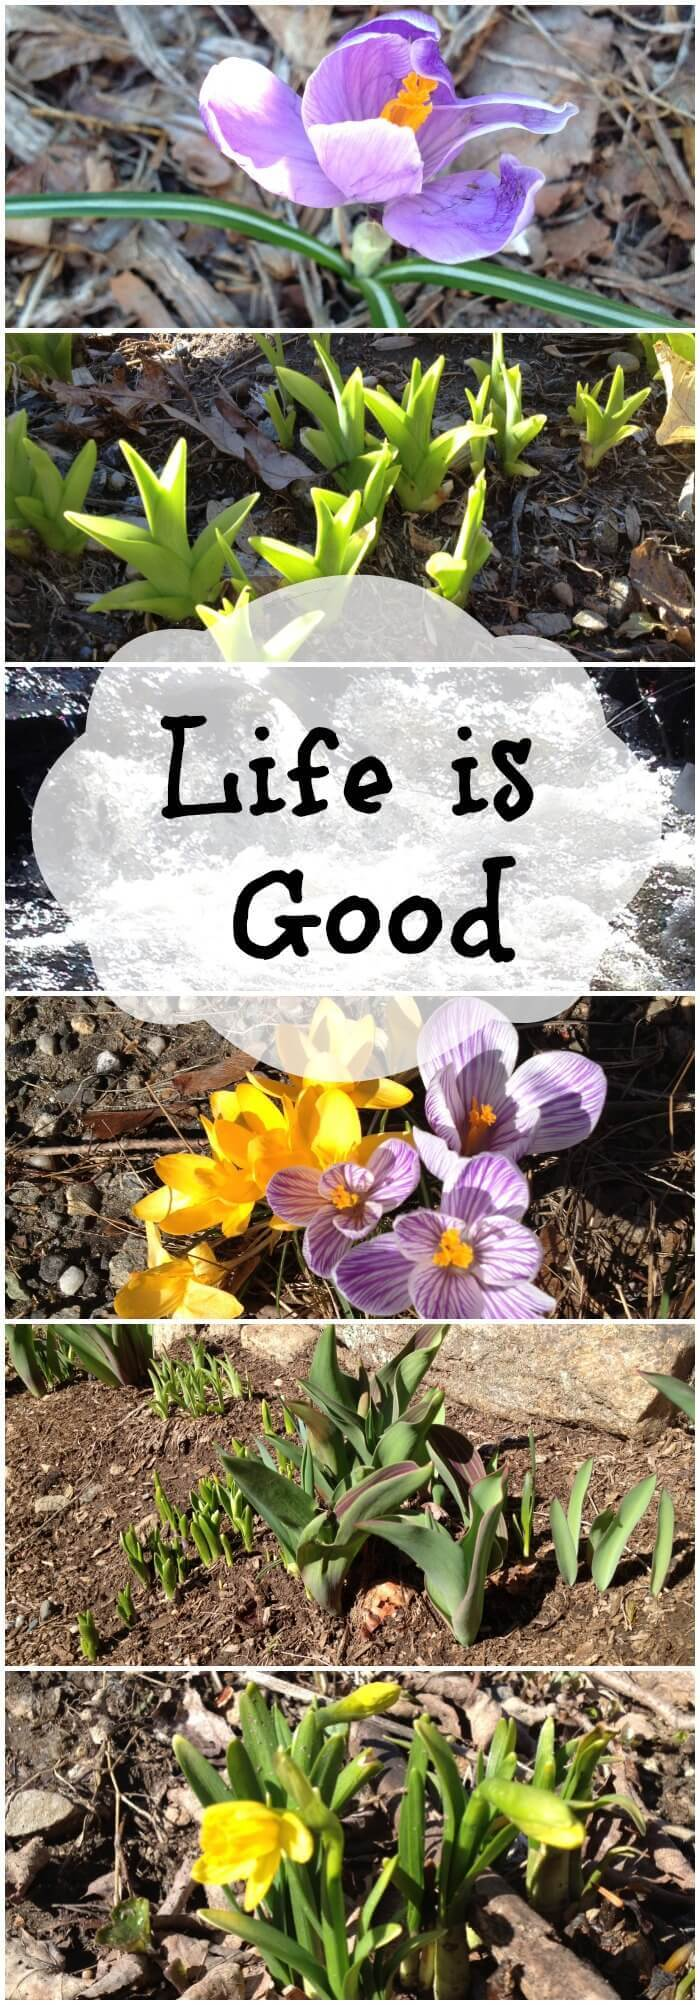 Life Is Good - Happy Spring!